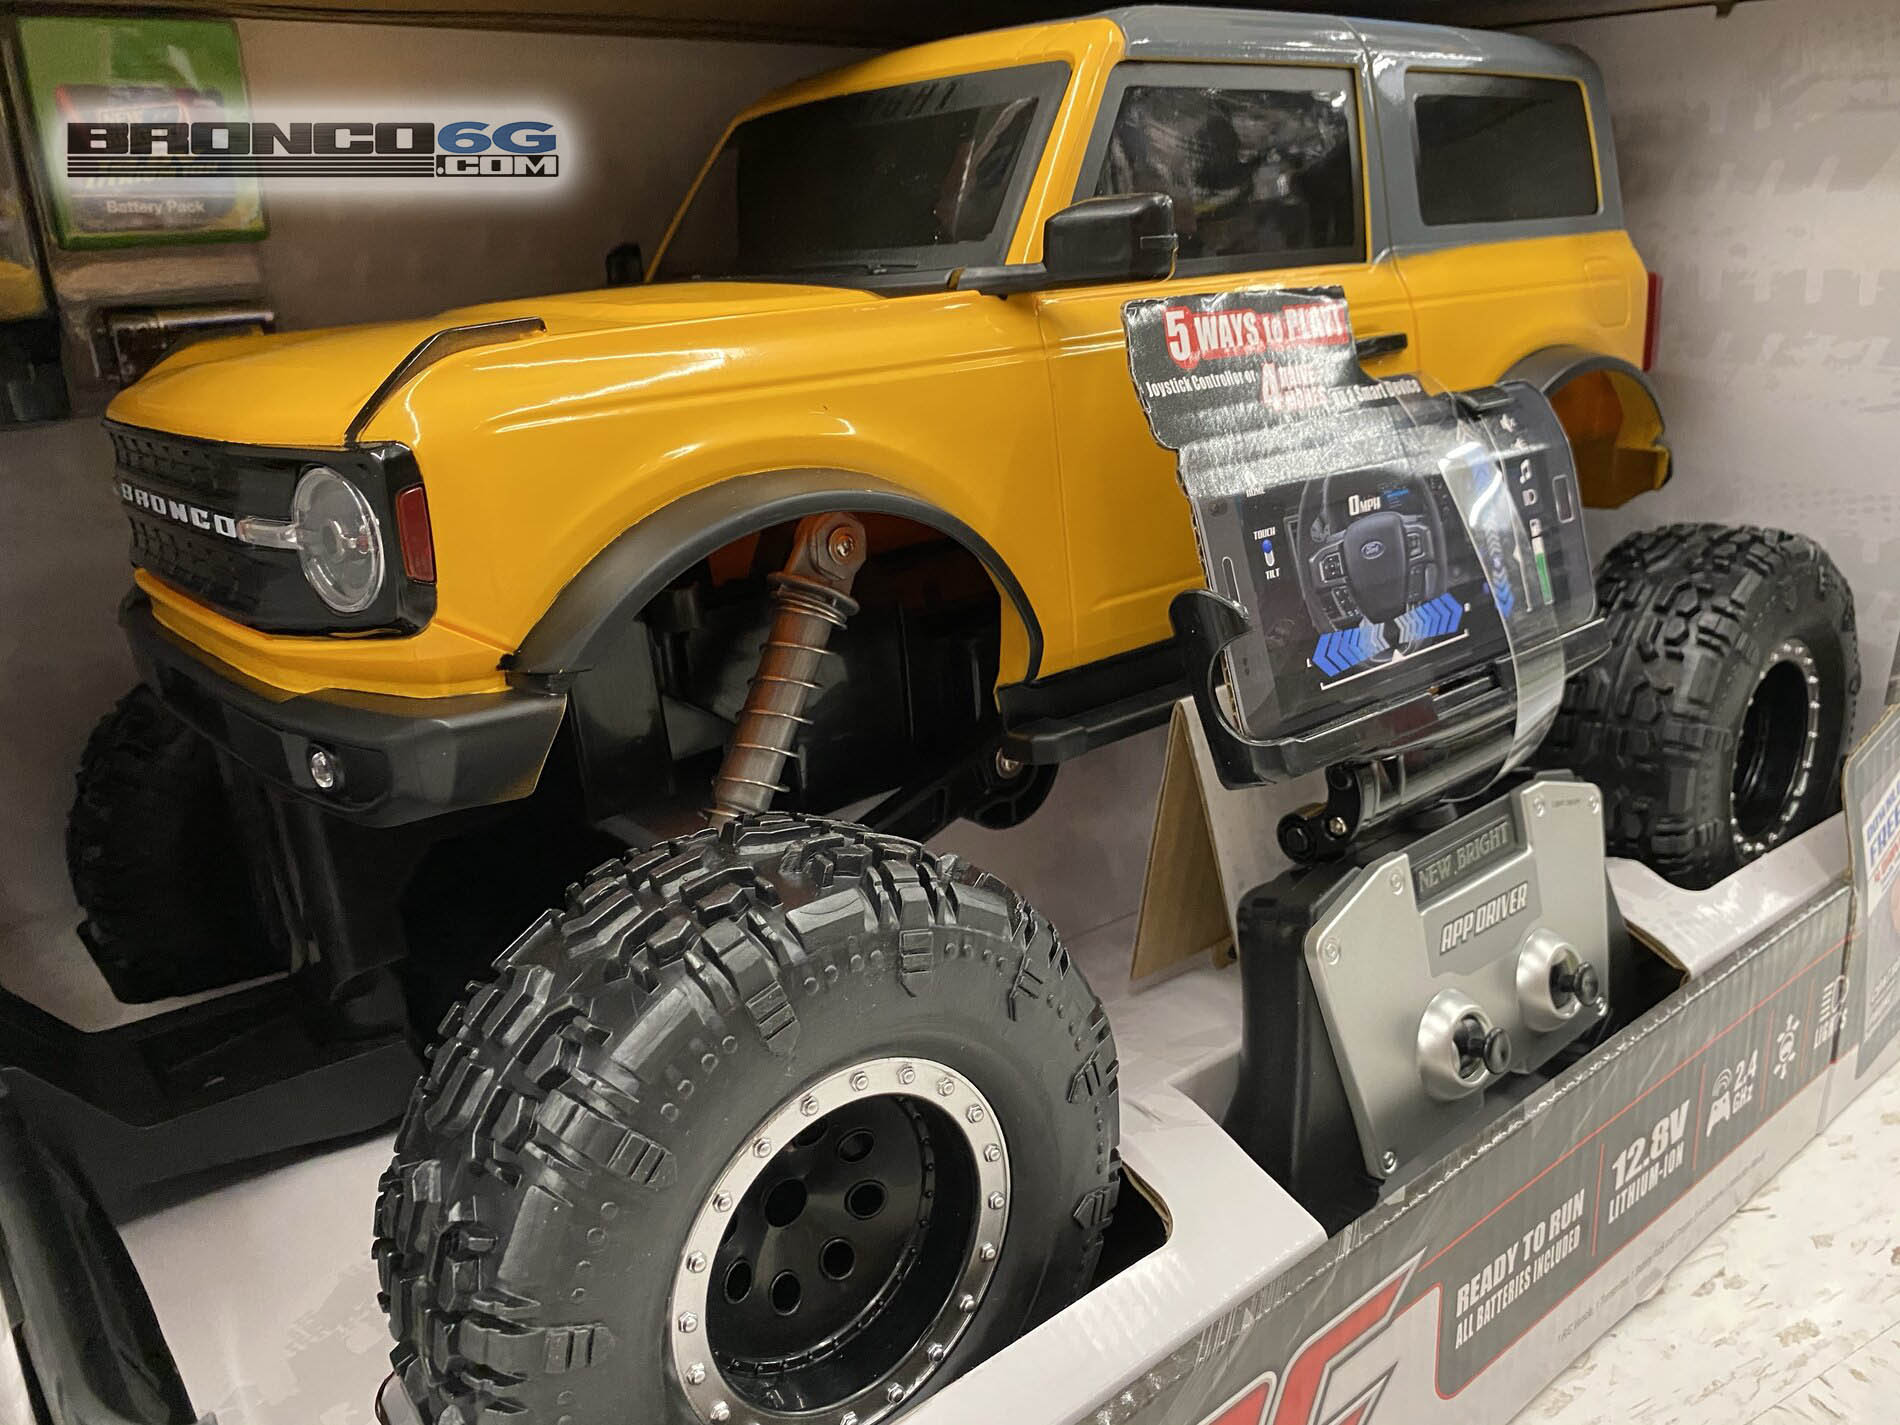 2021 Ford Bronco RC remote control car 1.jpg